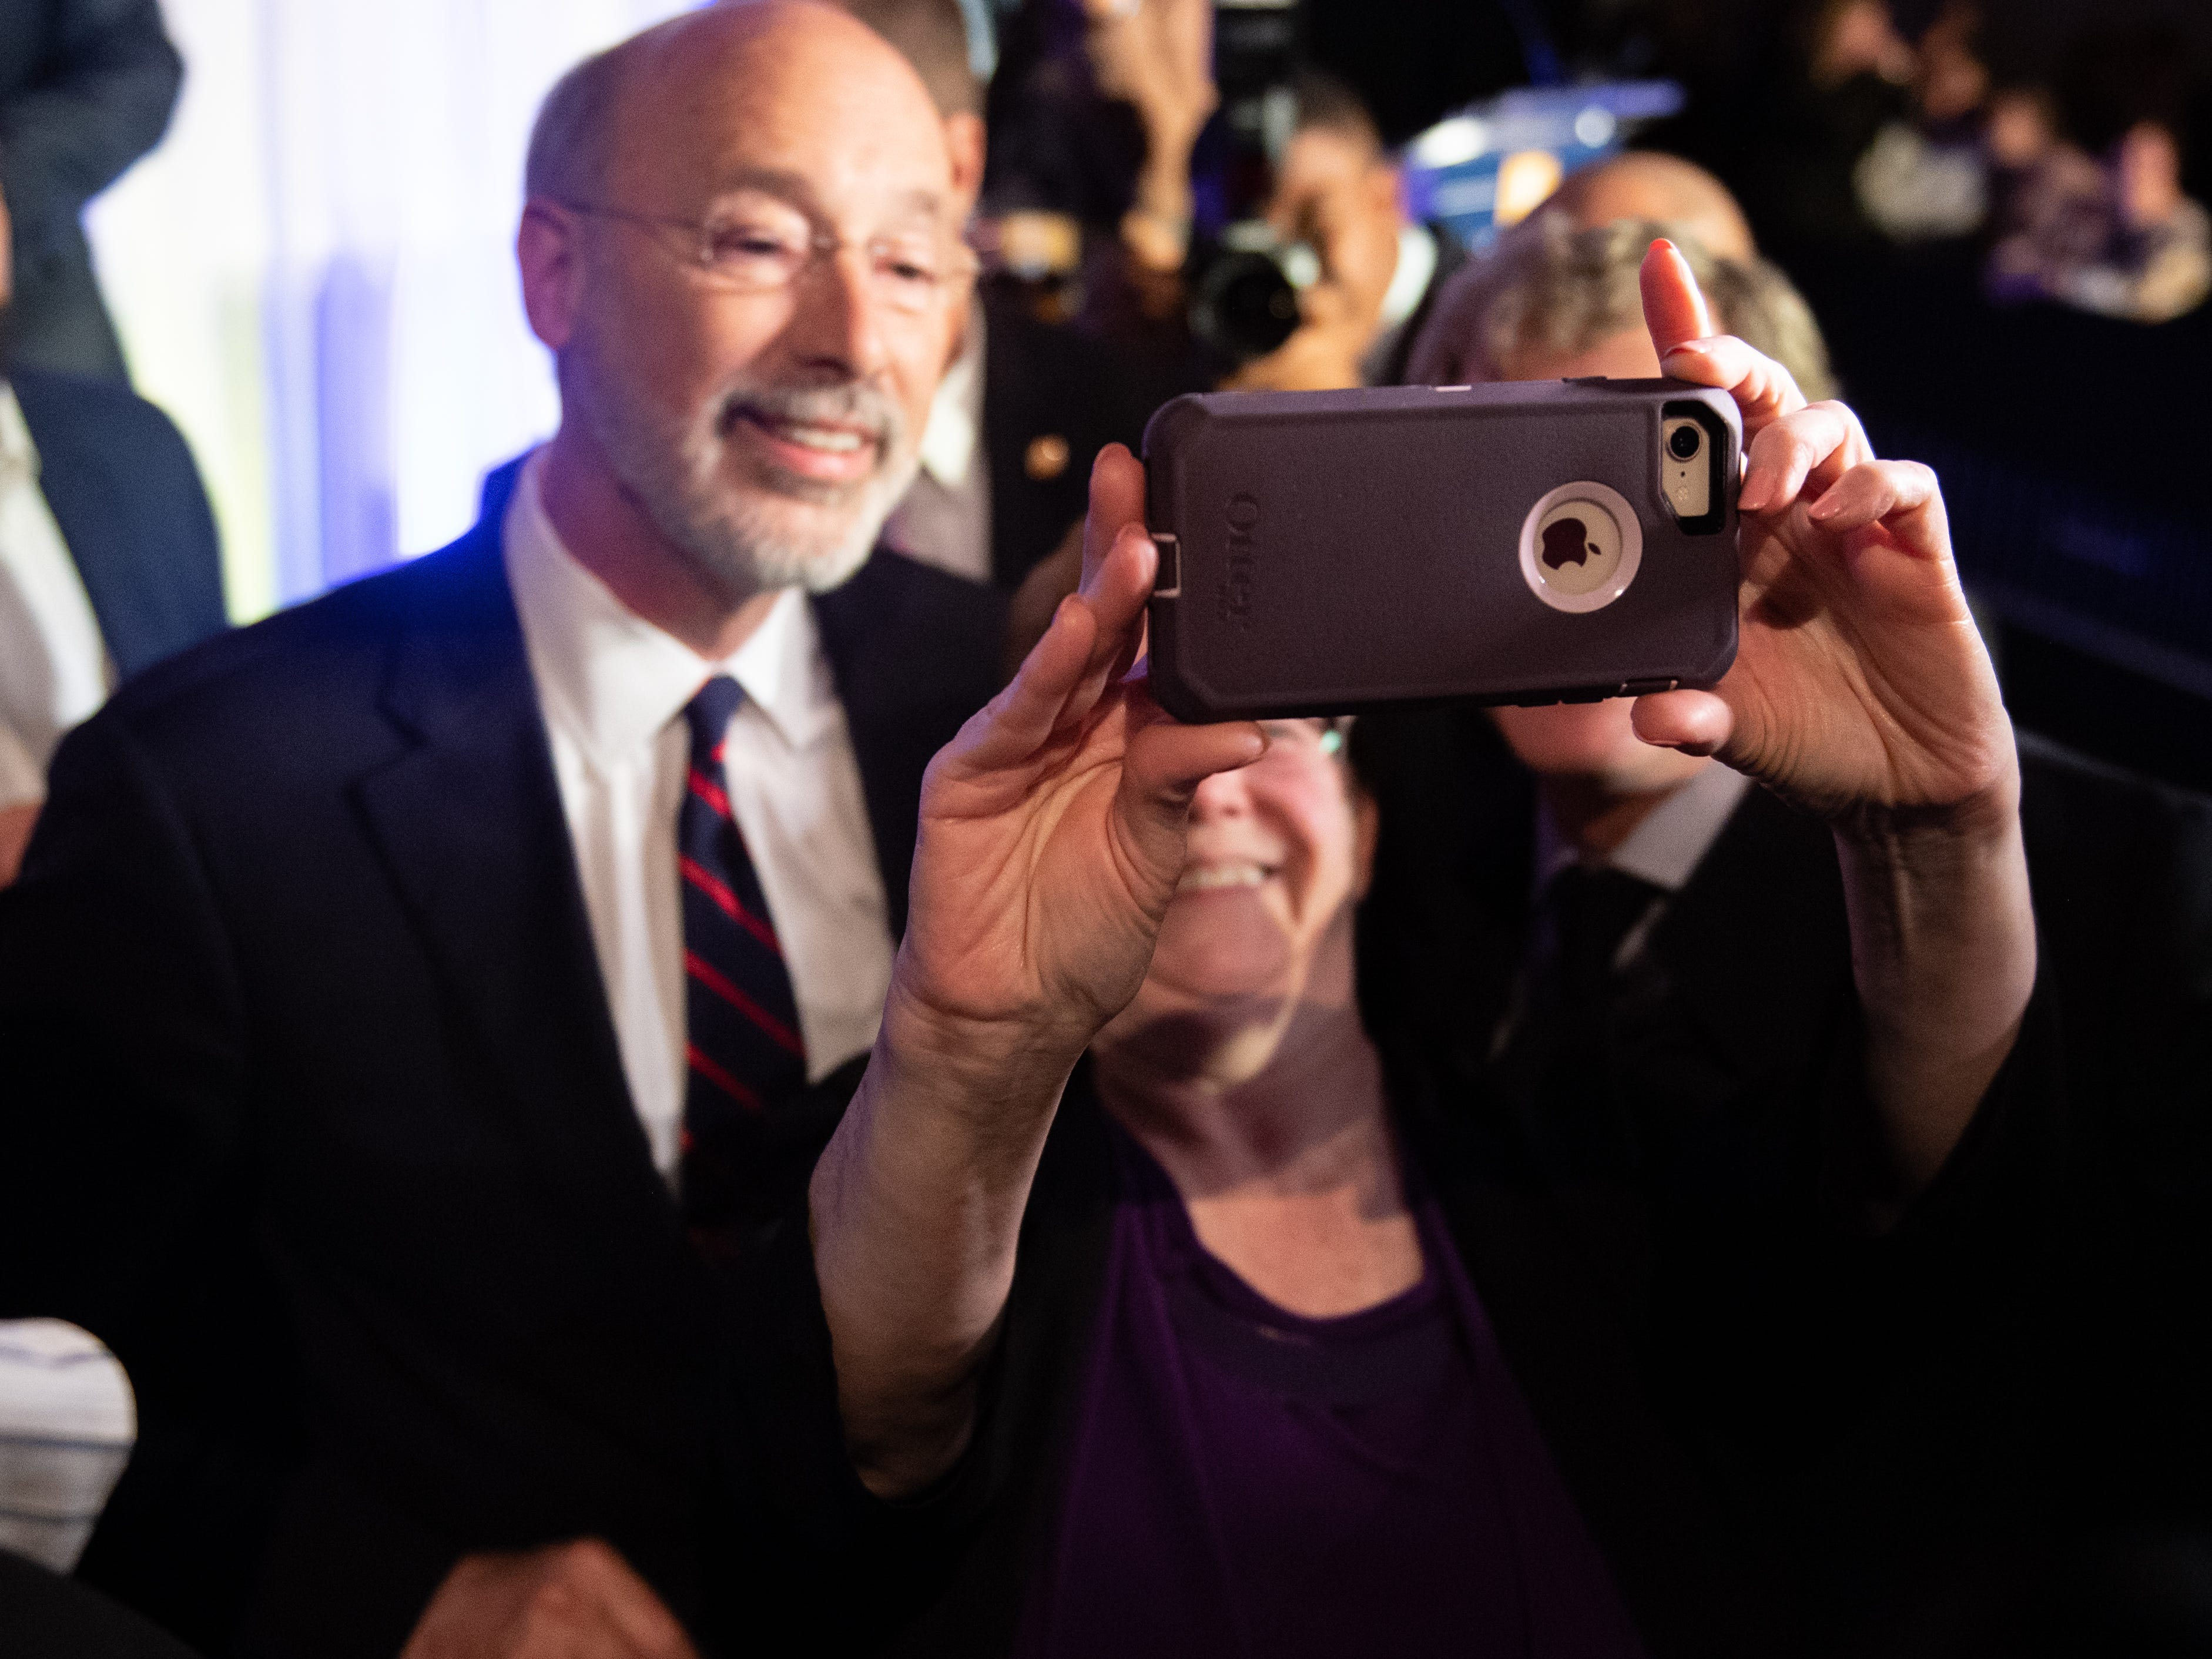 Governor Tom Wolf poses for a selfie during the Governor Election Night Party at The Bond, Tuesday, November 6, 2018. Tom Wolf was re-elected as Governor of Pennsylvania after defeating Scott Wagner.